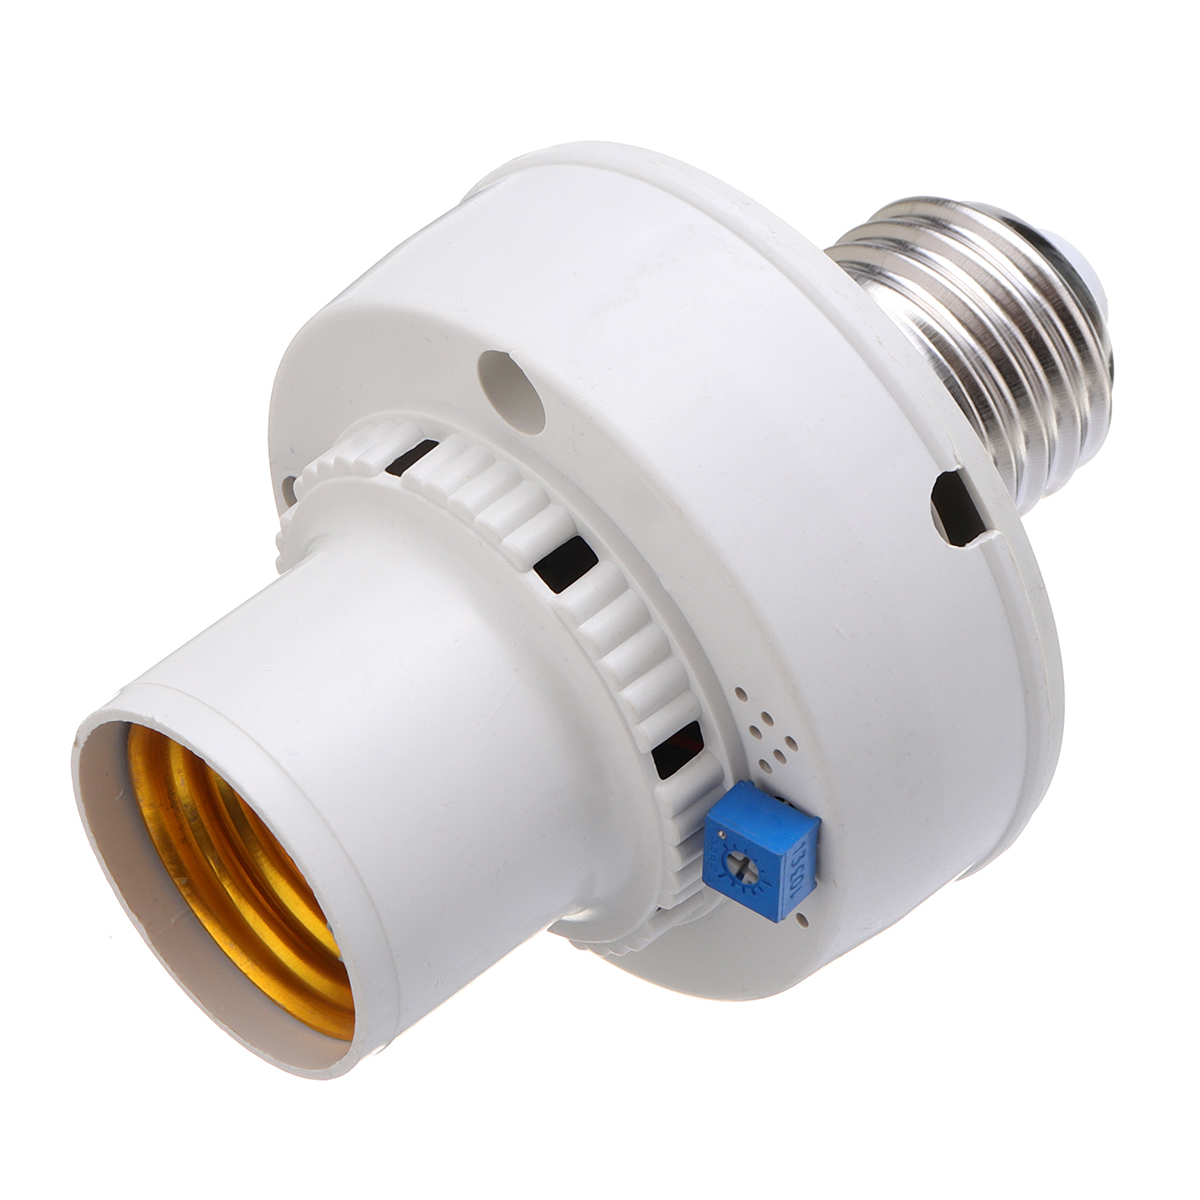 AC220V 100W E27 Sound-controlled Clap Turn On Off Bulb Adapter Light Socket For LED CFL Light